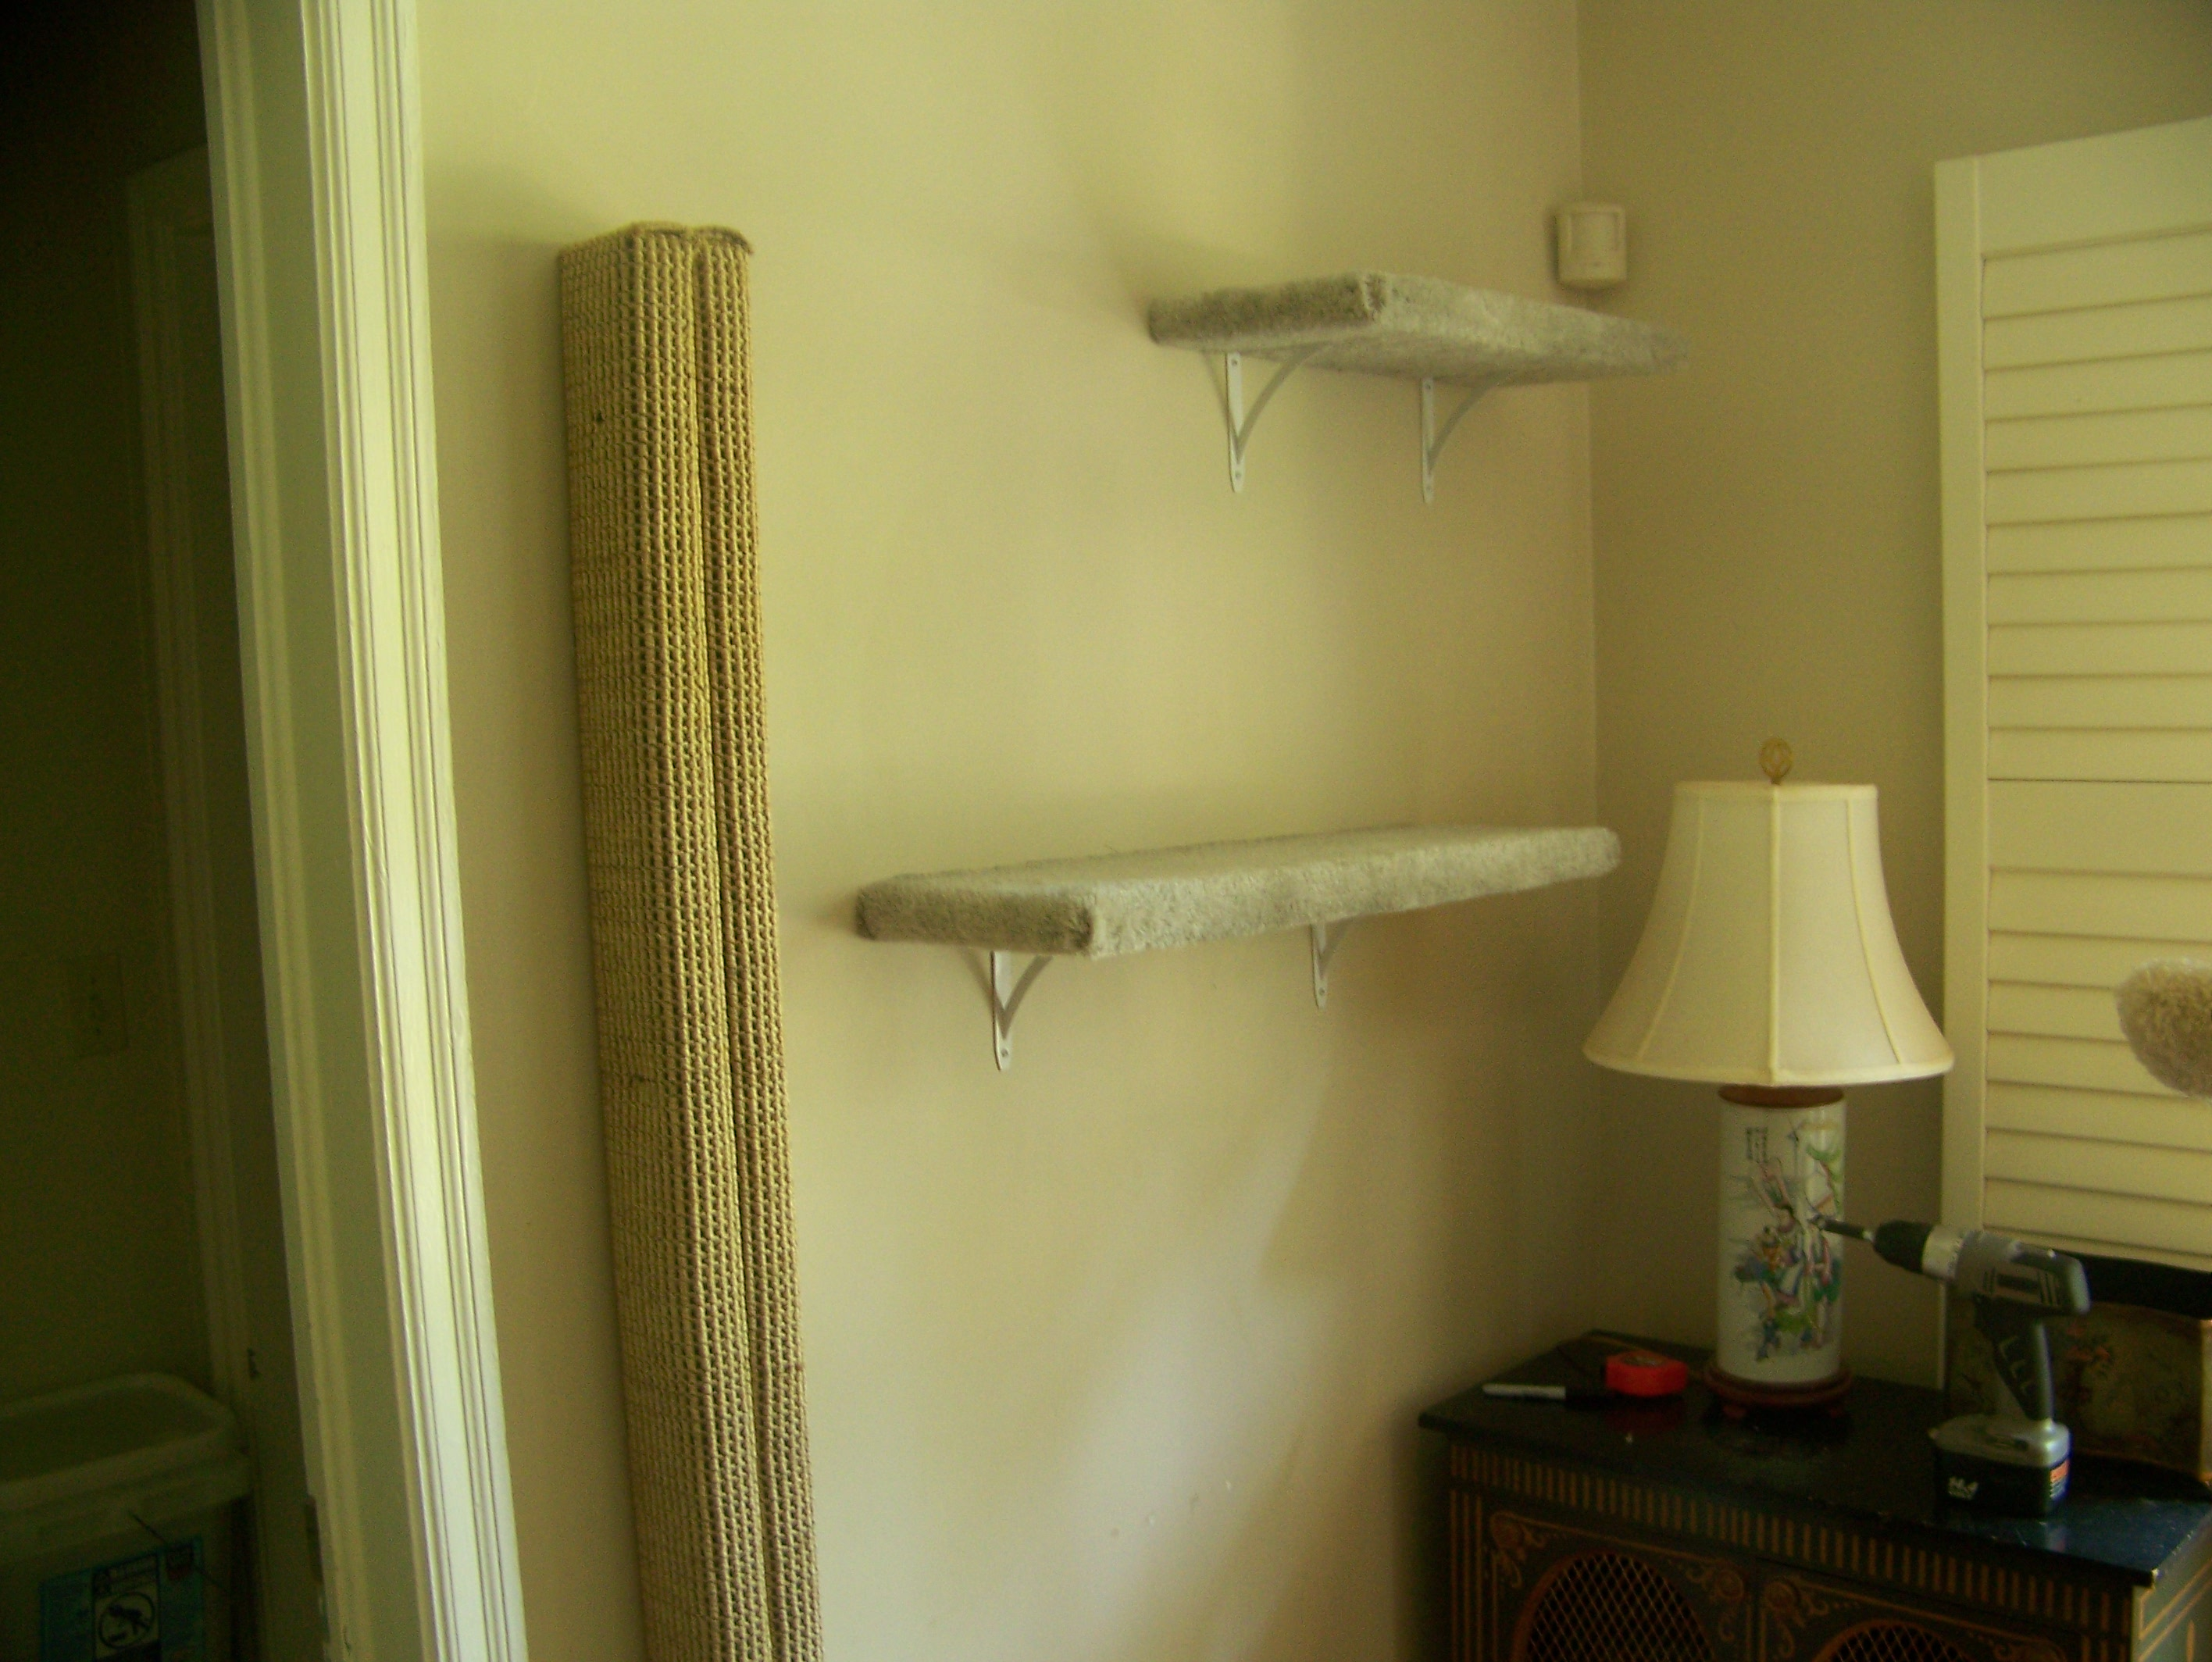 Another six foot tall scratching post and shelves leading to a long run above the window.